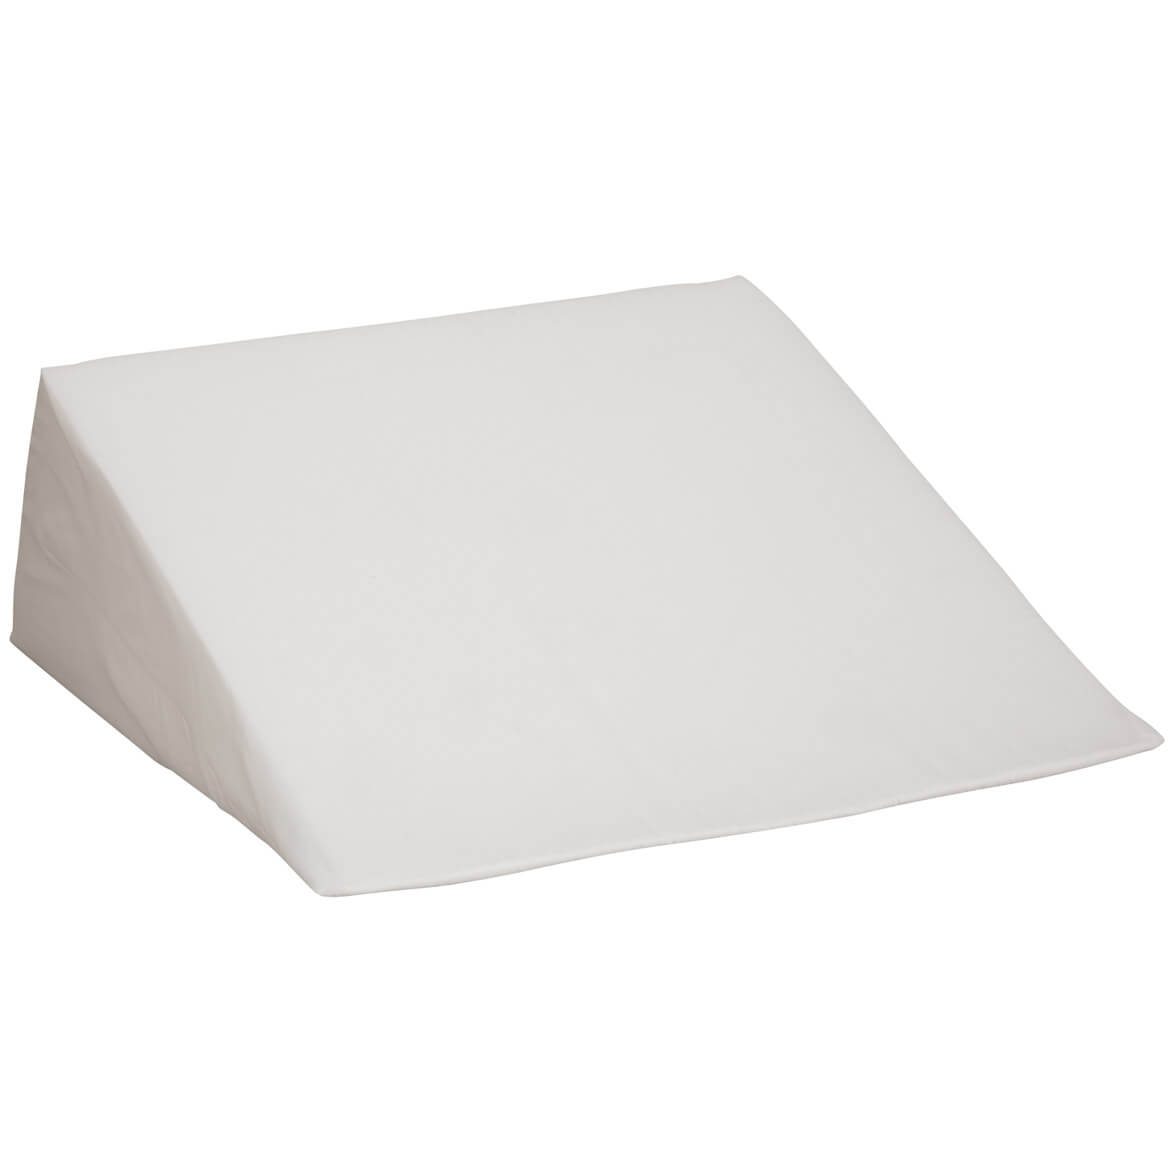 Bed wedge bed bath and beyond - Buy Foam Wedge Pillows From Bed Bath U0026 Beyond